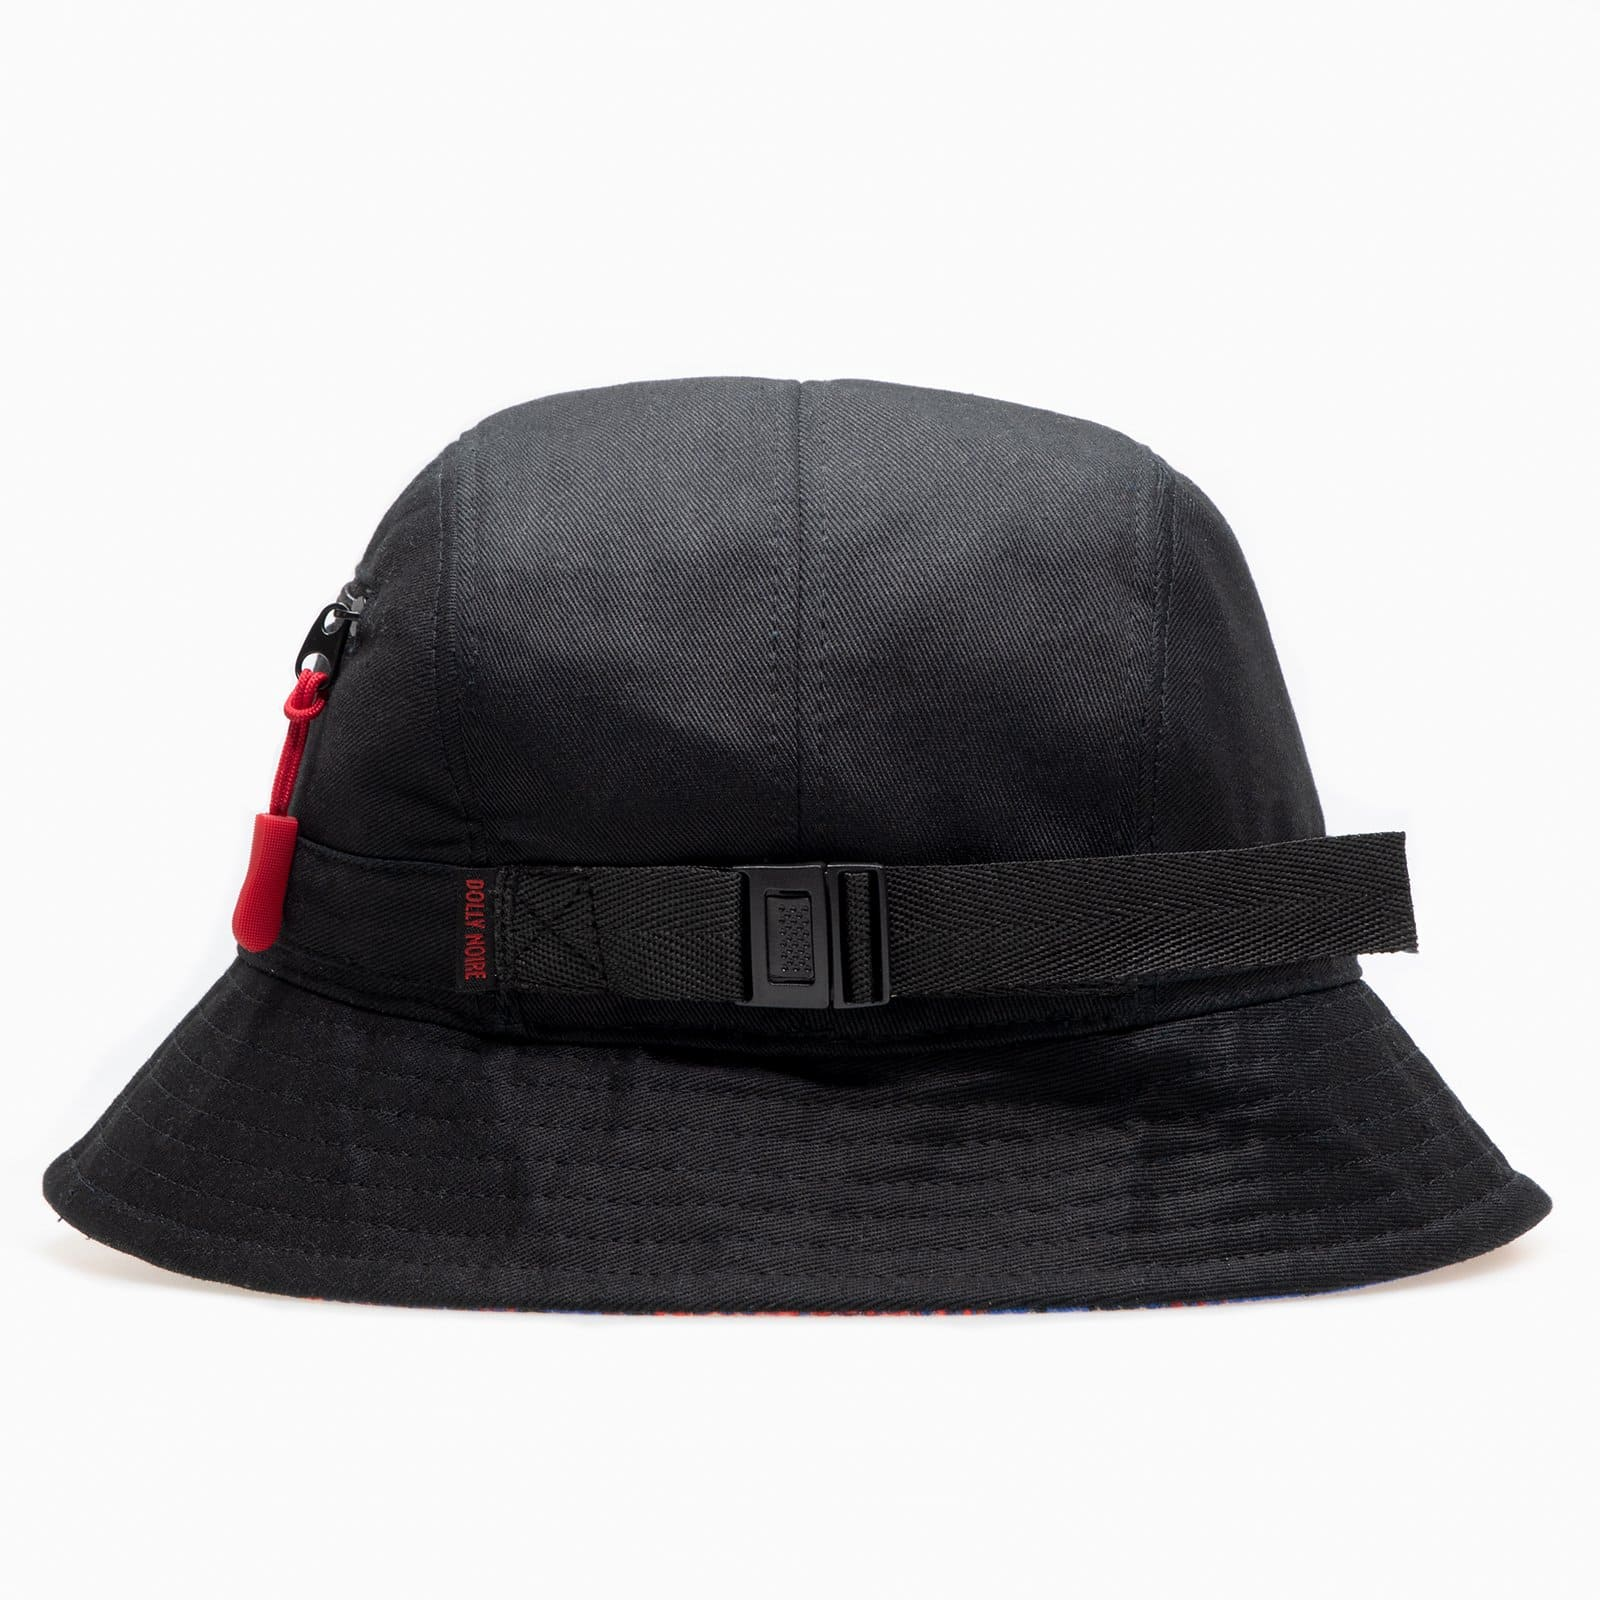 Dolly Noire Bucket Black - BLK